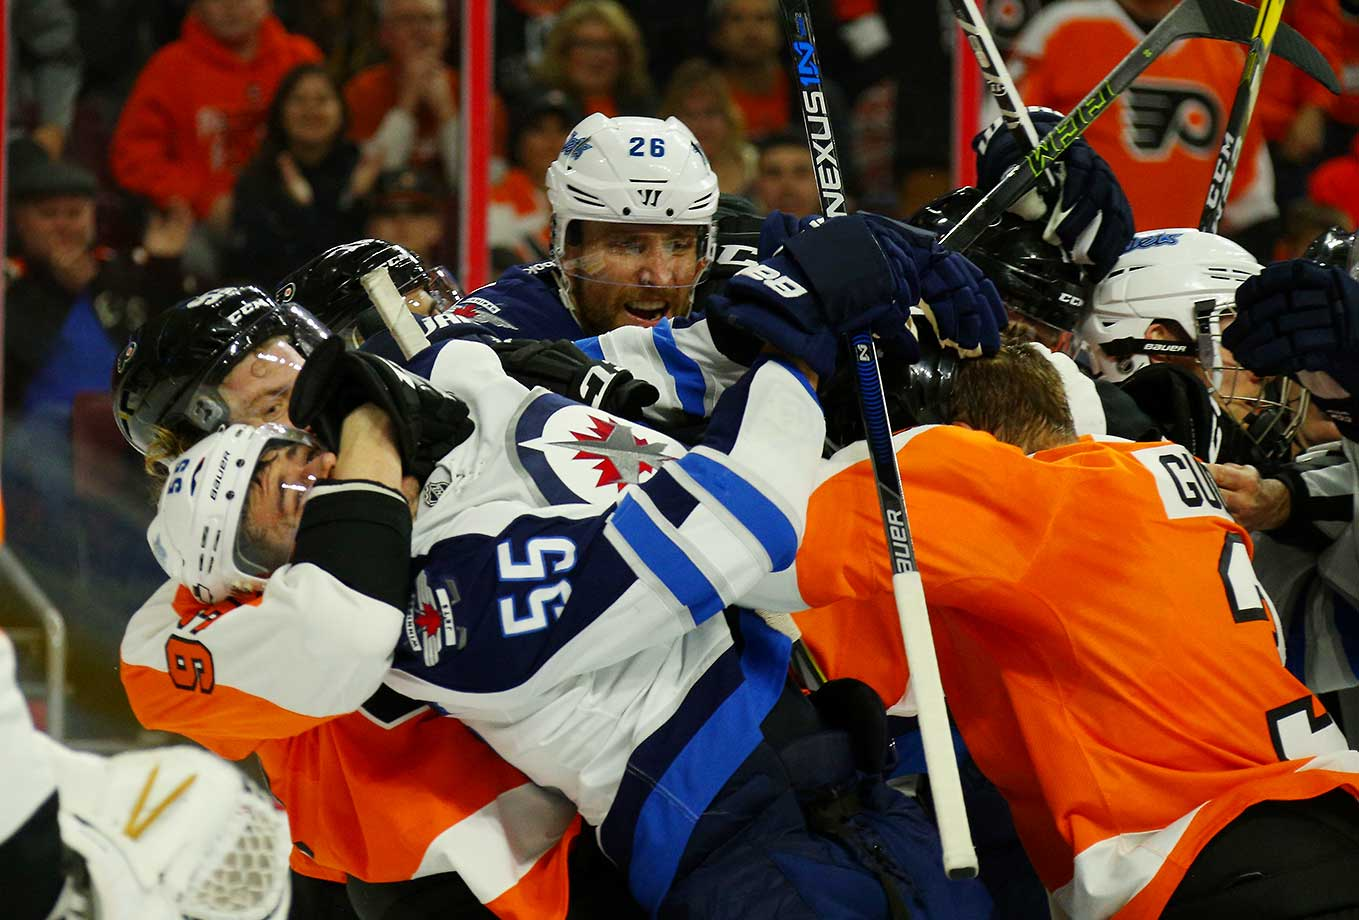 Jakub Voracek (93) and Radko Gudas (3) of Philadelphia combine on Mark Scheifele (55) of Winnipeg.